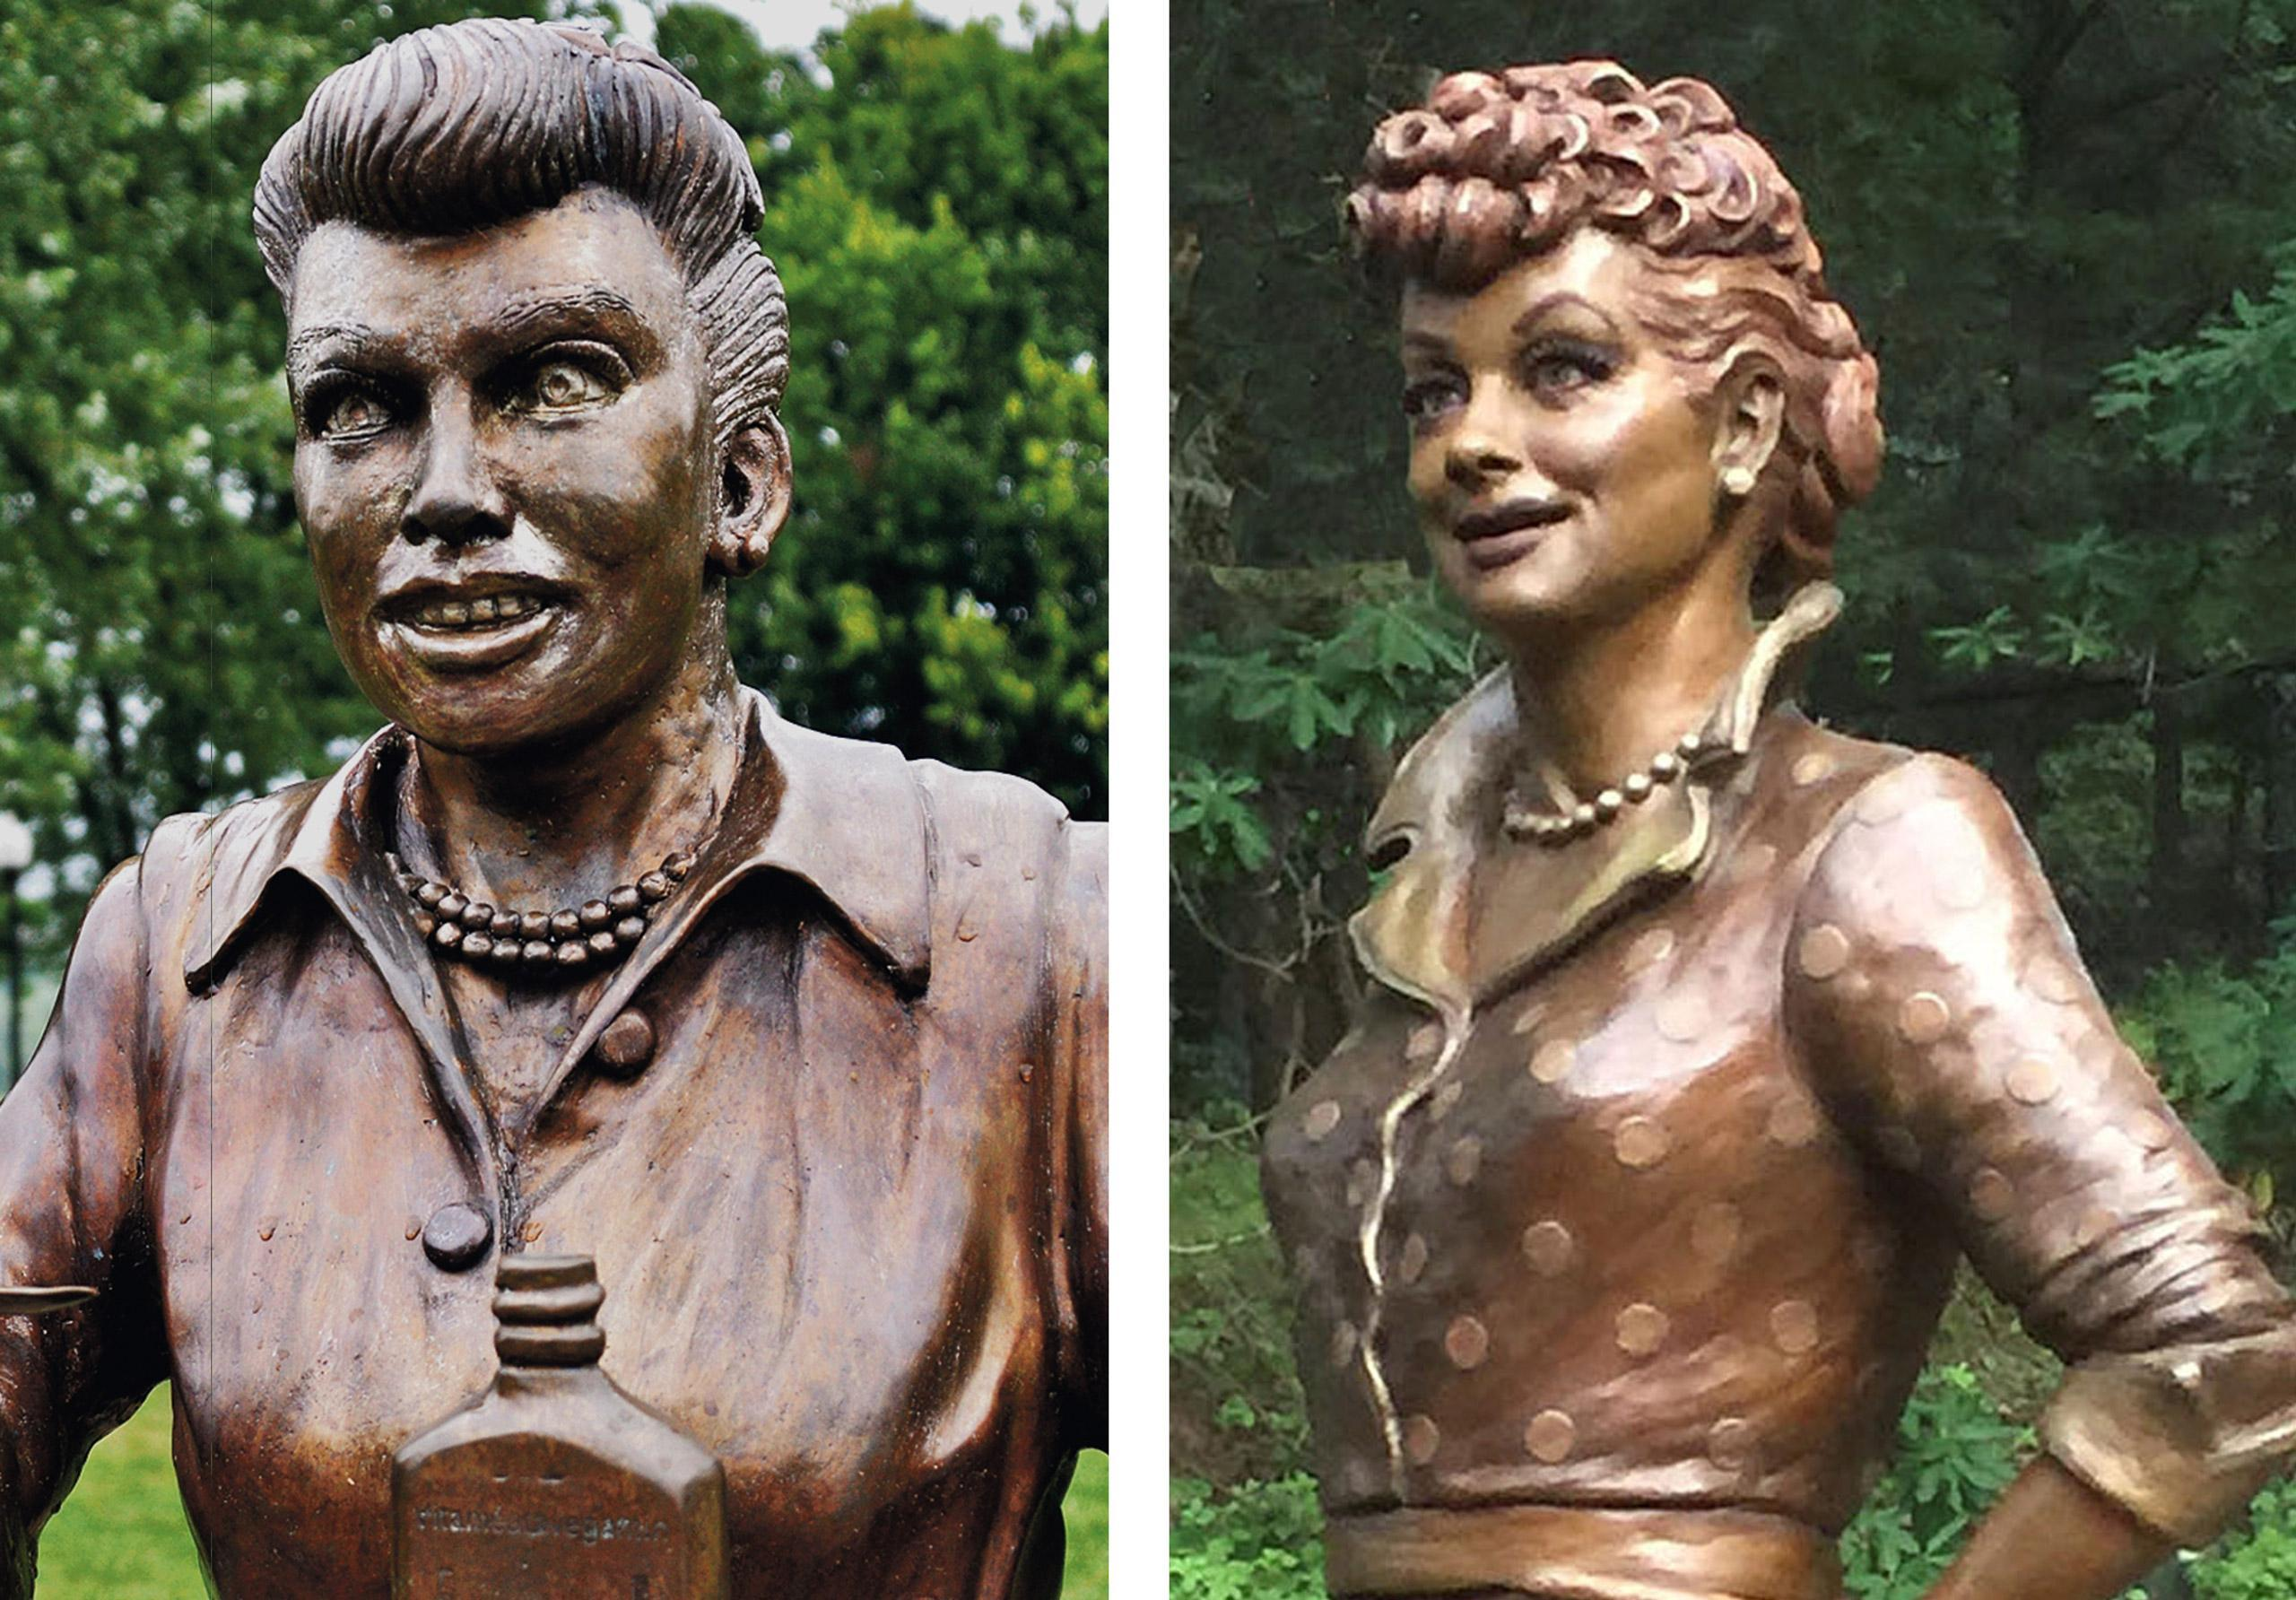 That 'Scary' Lucille Ball Statue Has Finally Been Replaced